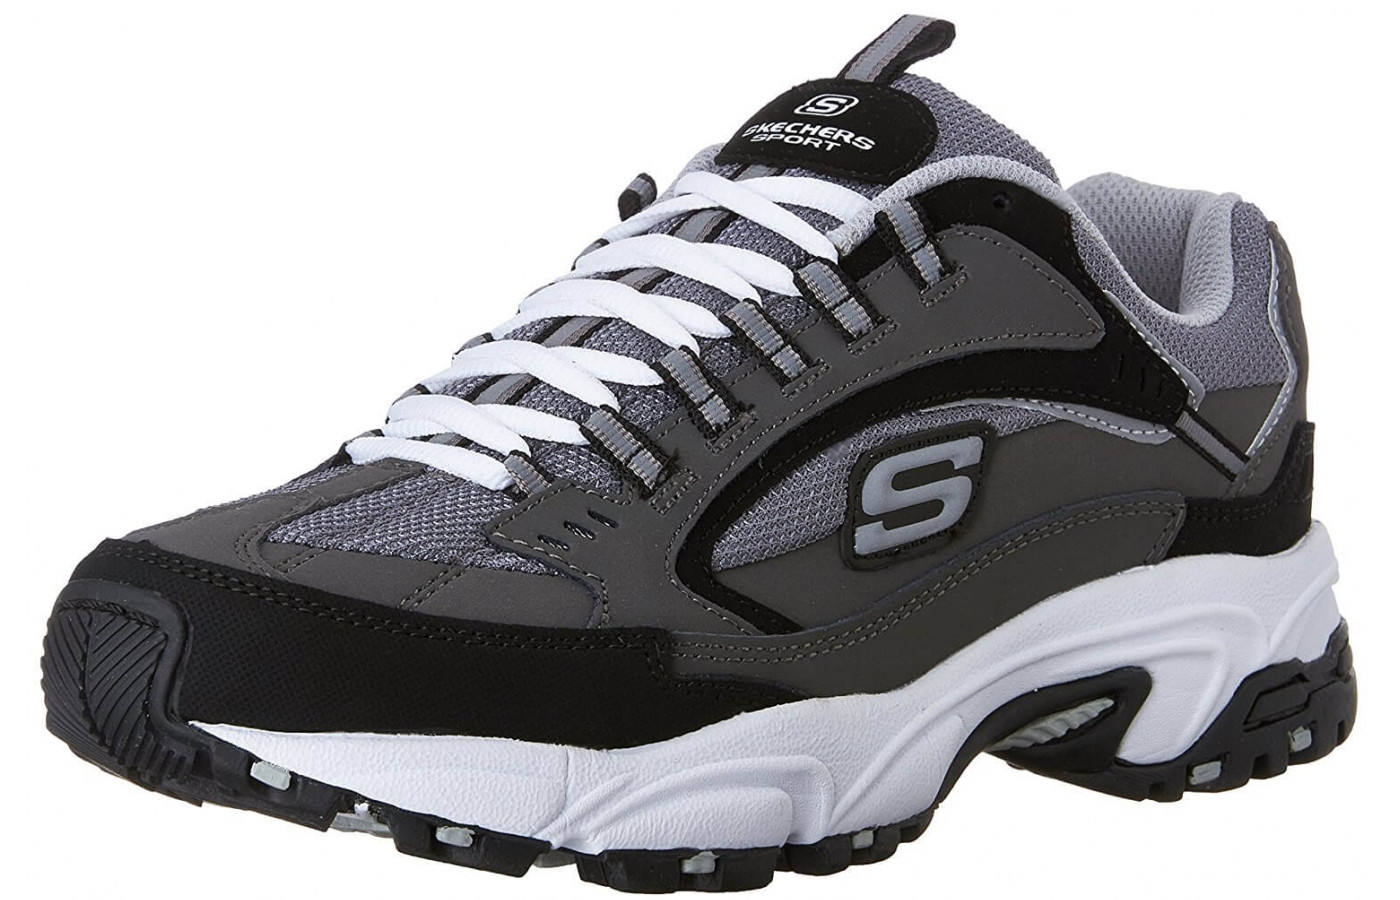 Skechers Stamina Cutback front angled perspective